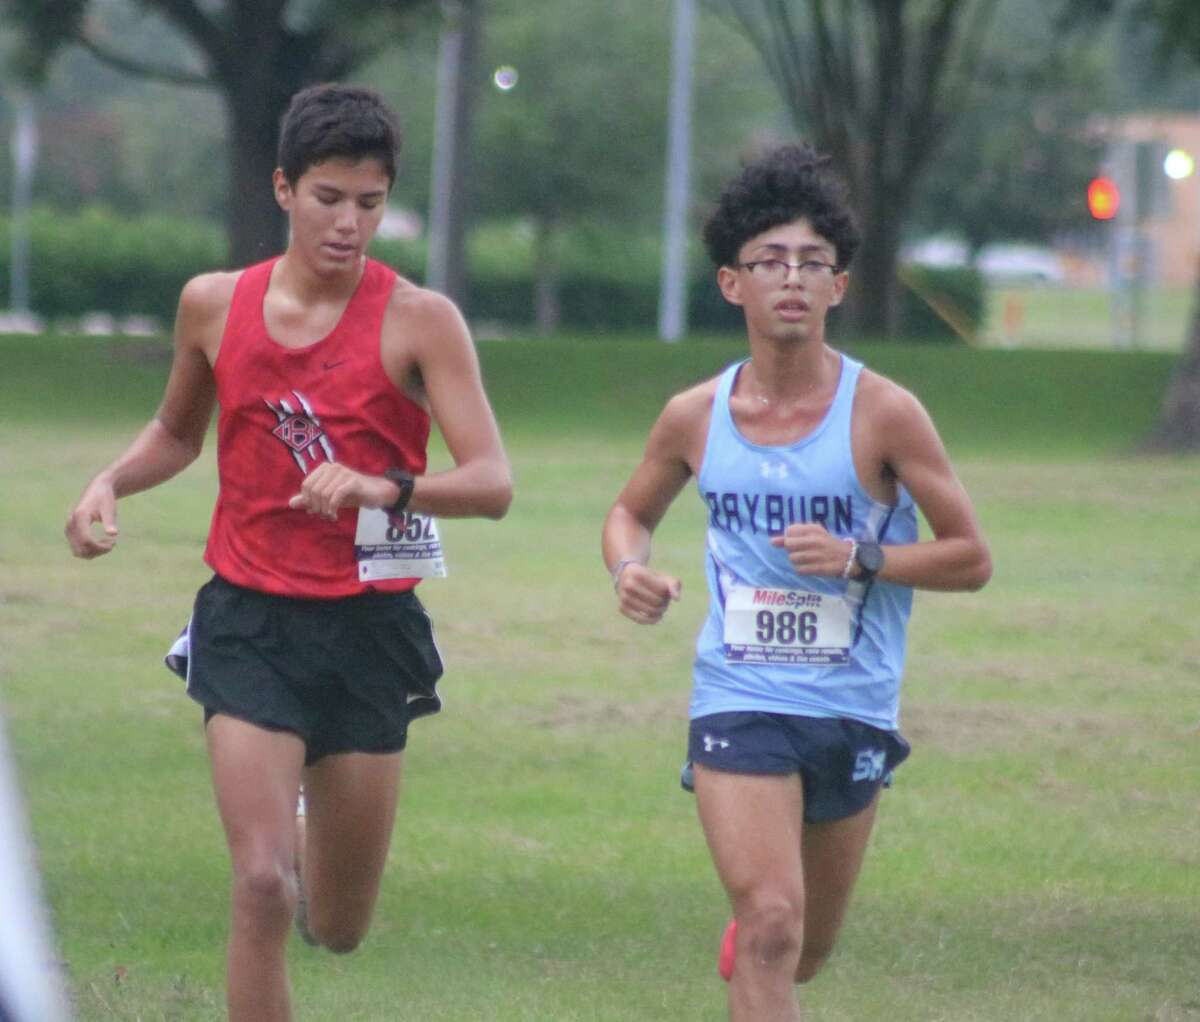 Clear Brook's Matthew Trevino (left) and Sam Rayburn's Jonathan Rivera are shoulder-to-shoulder in contesting first place during the Red Division 5K race at Crenshaw Park last Thursday morning.